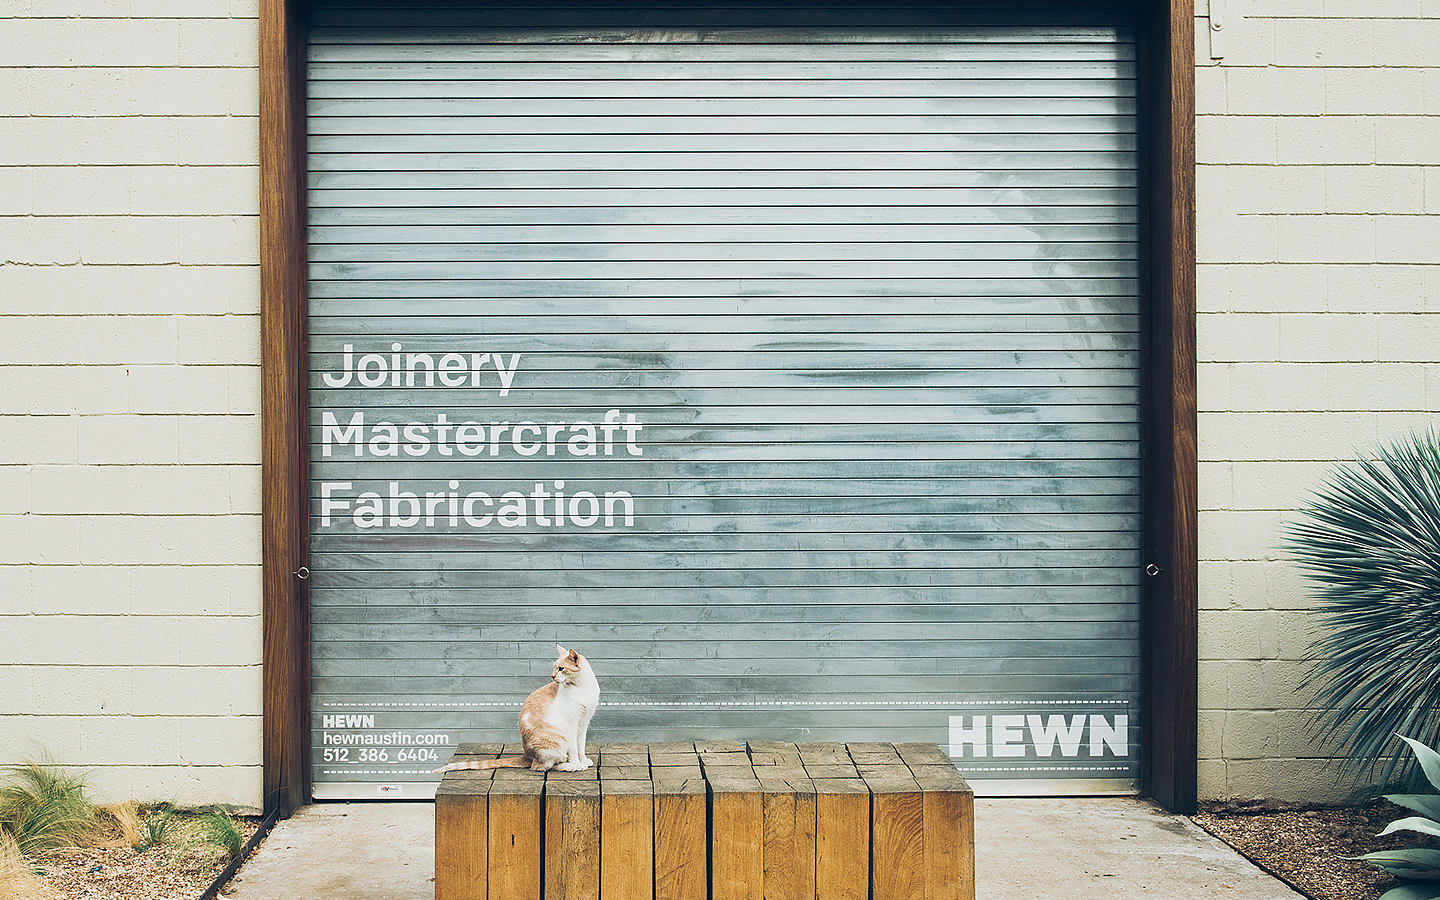 Branding for woodworking shop Hewn designed by Föda, United States